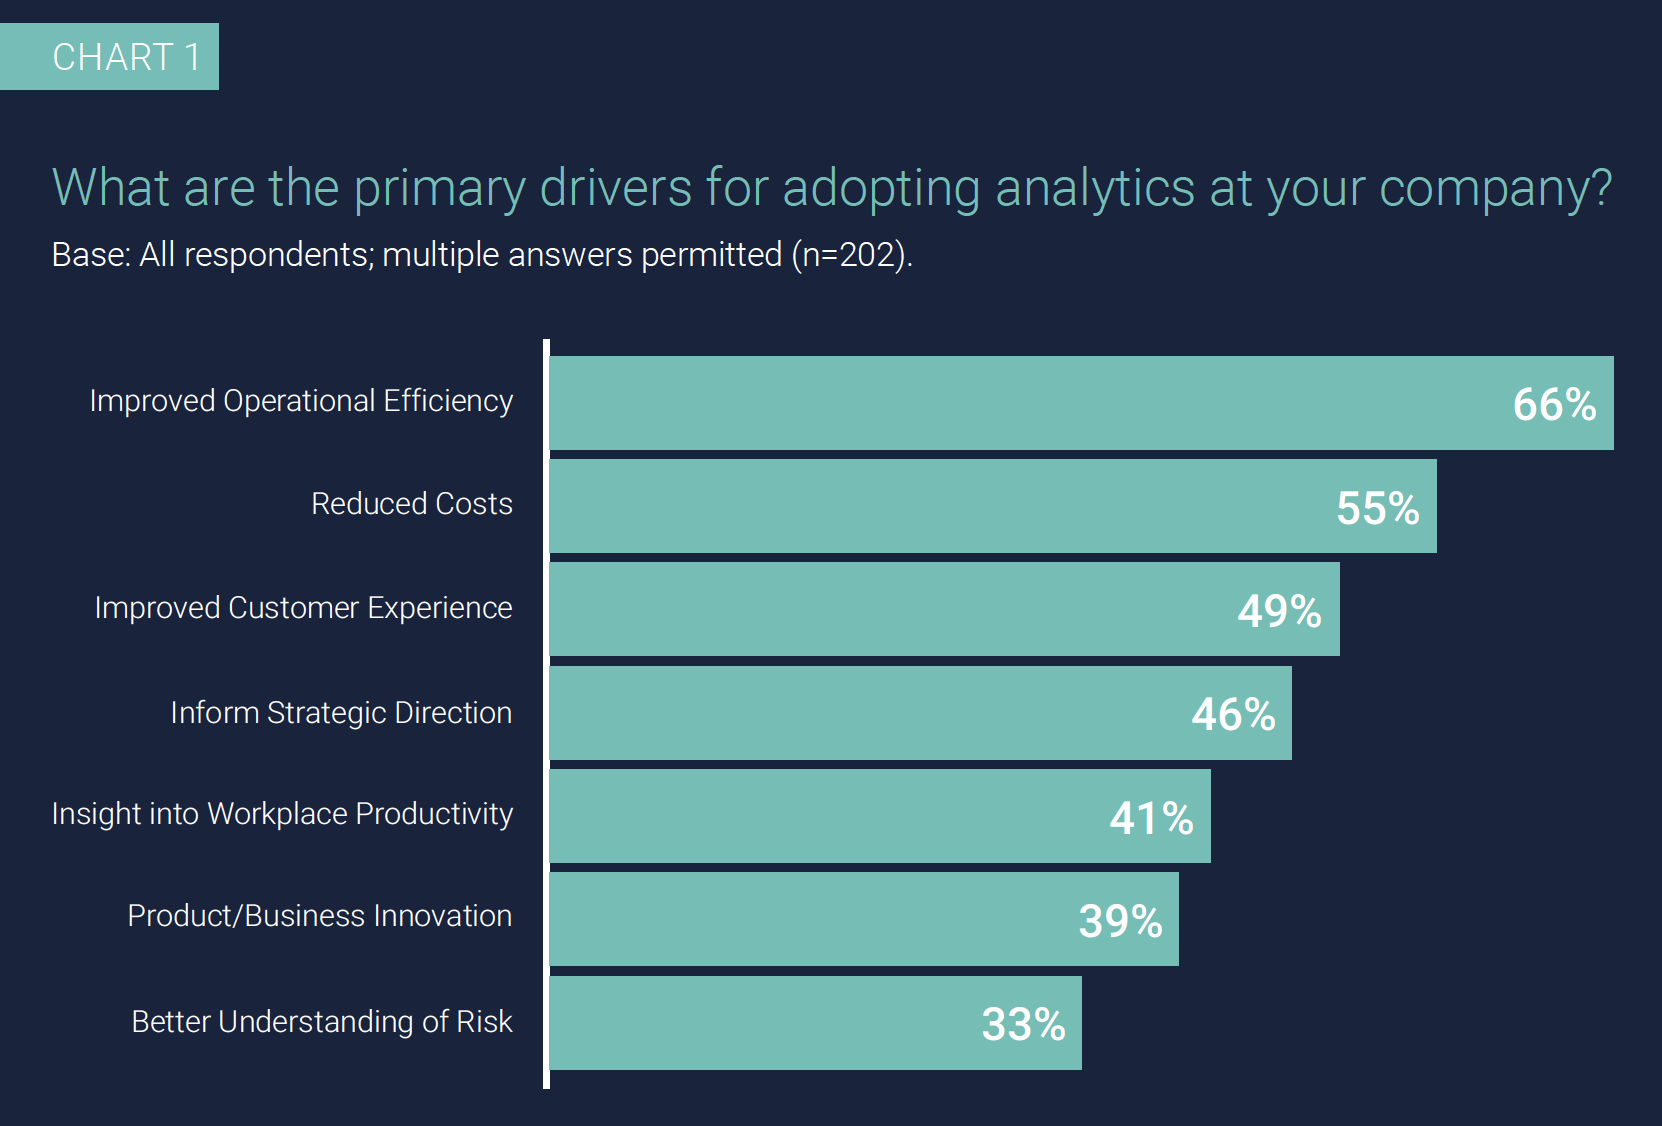 Chart 1: What are the primary drivers for adopting analytics at your company? Base: All respondents; multiple answers permitted (n=202).